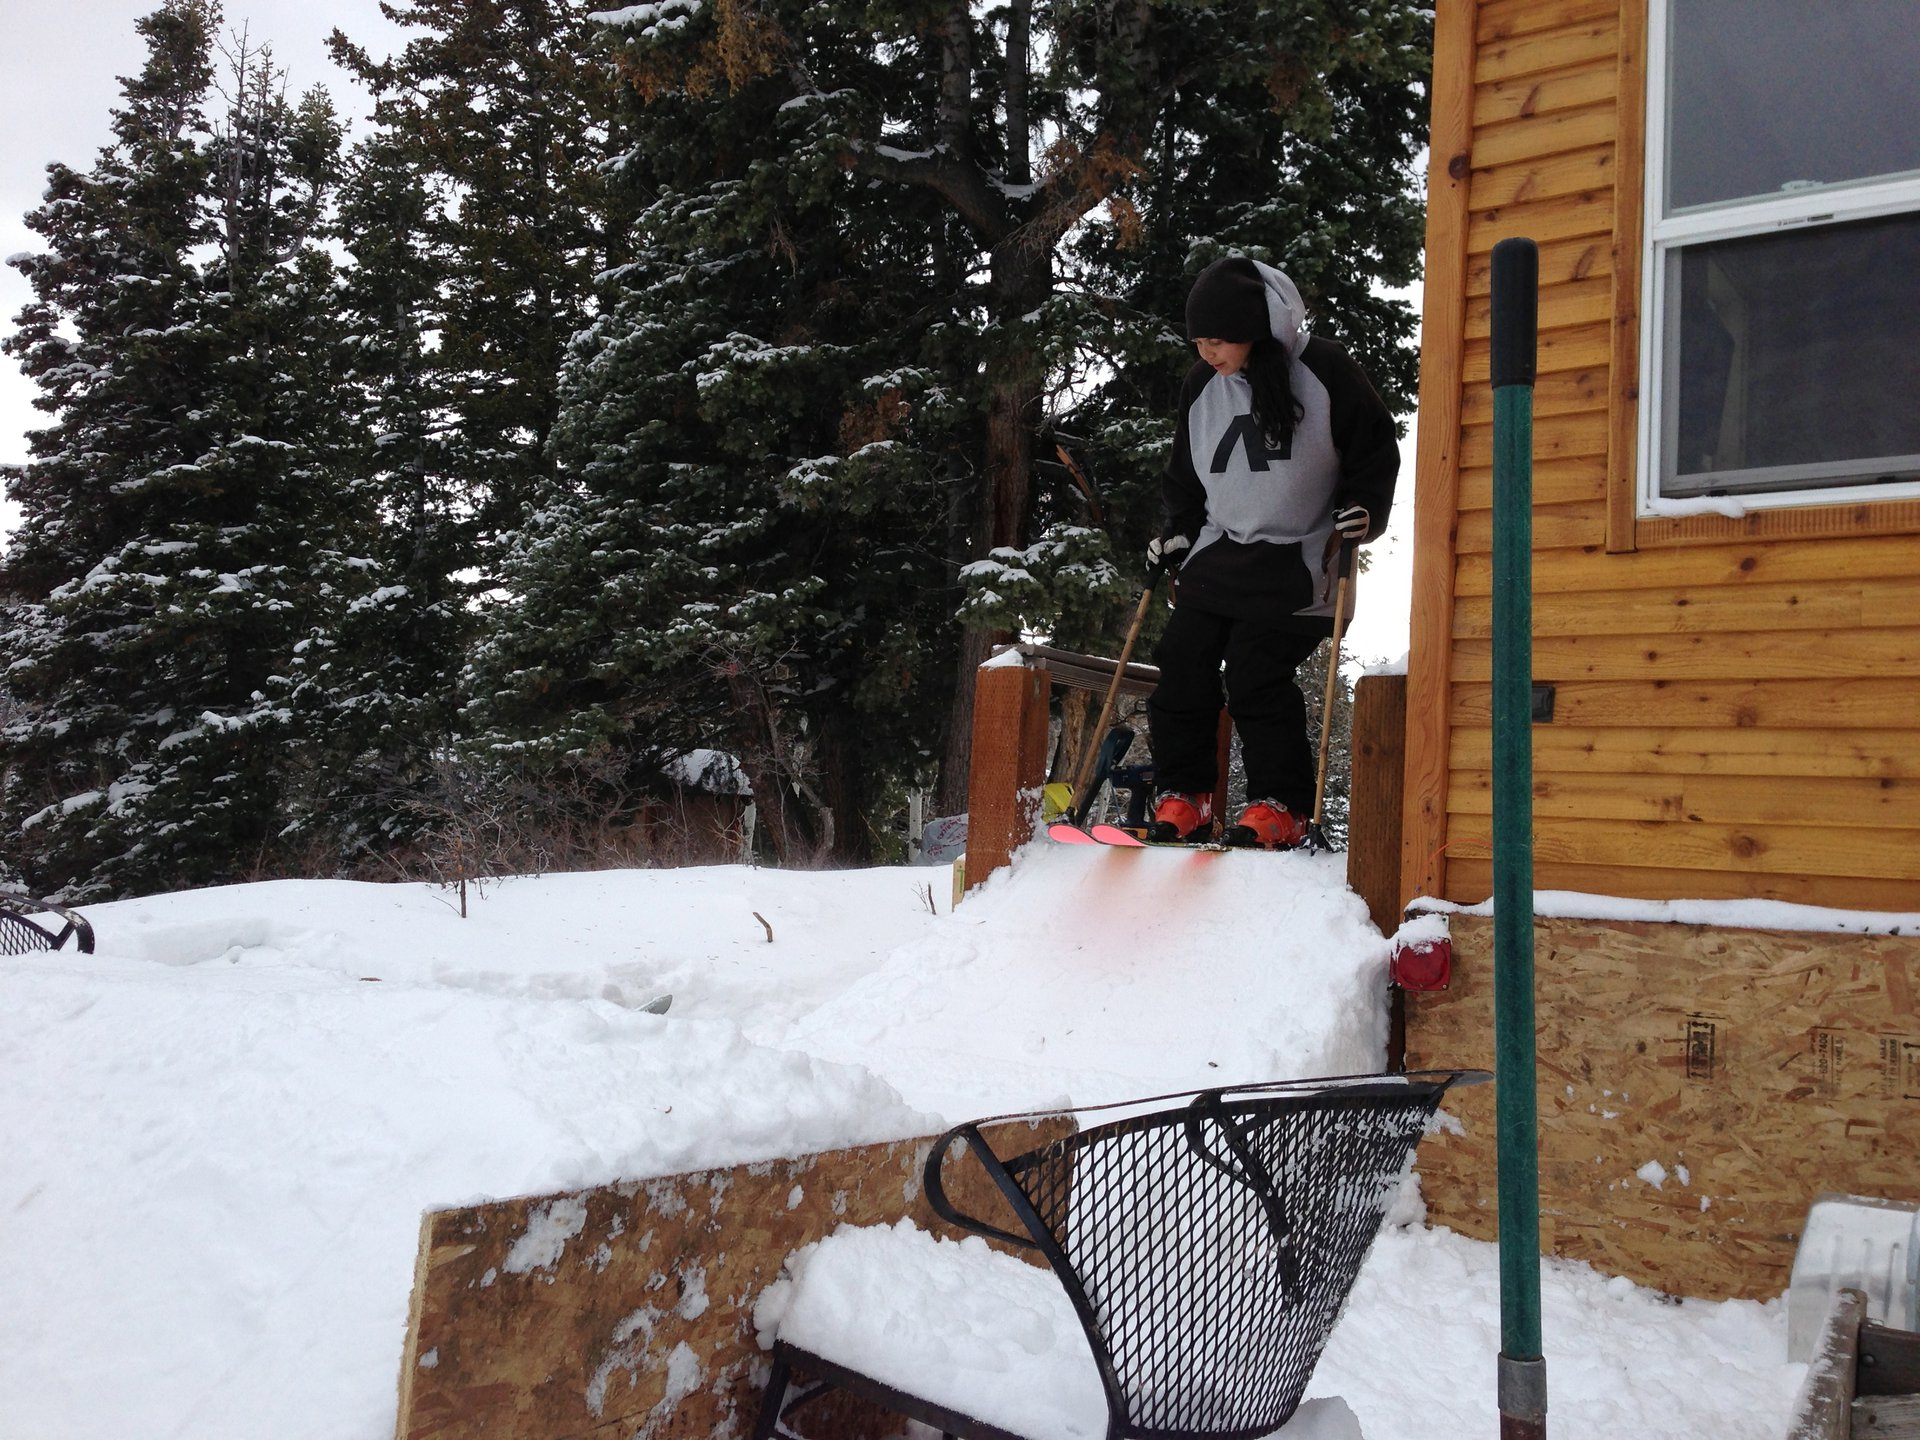 Dropping into my funline